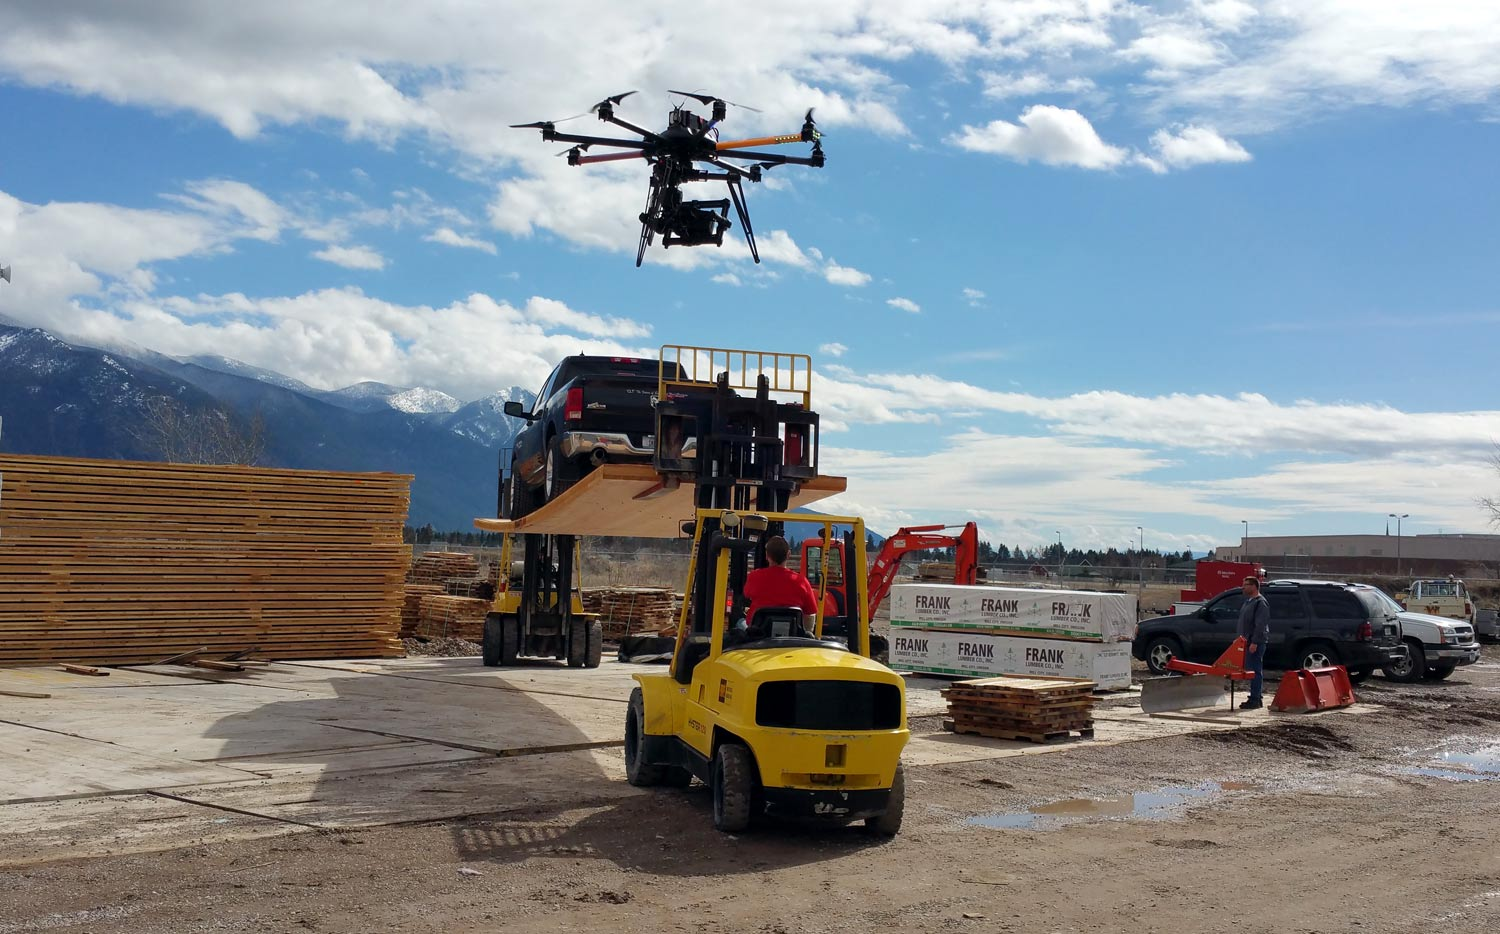 Use a Drone Filming Construction